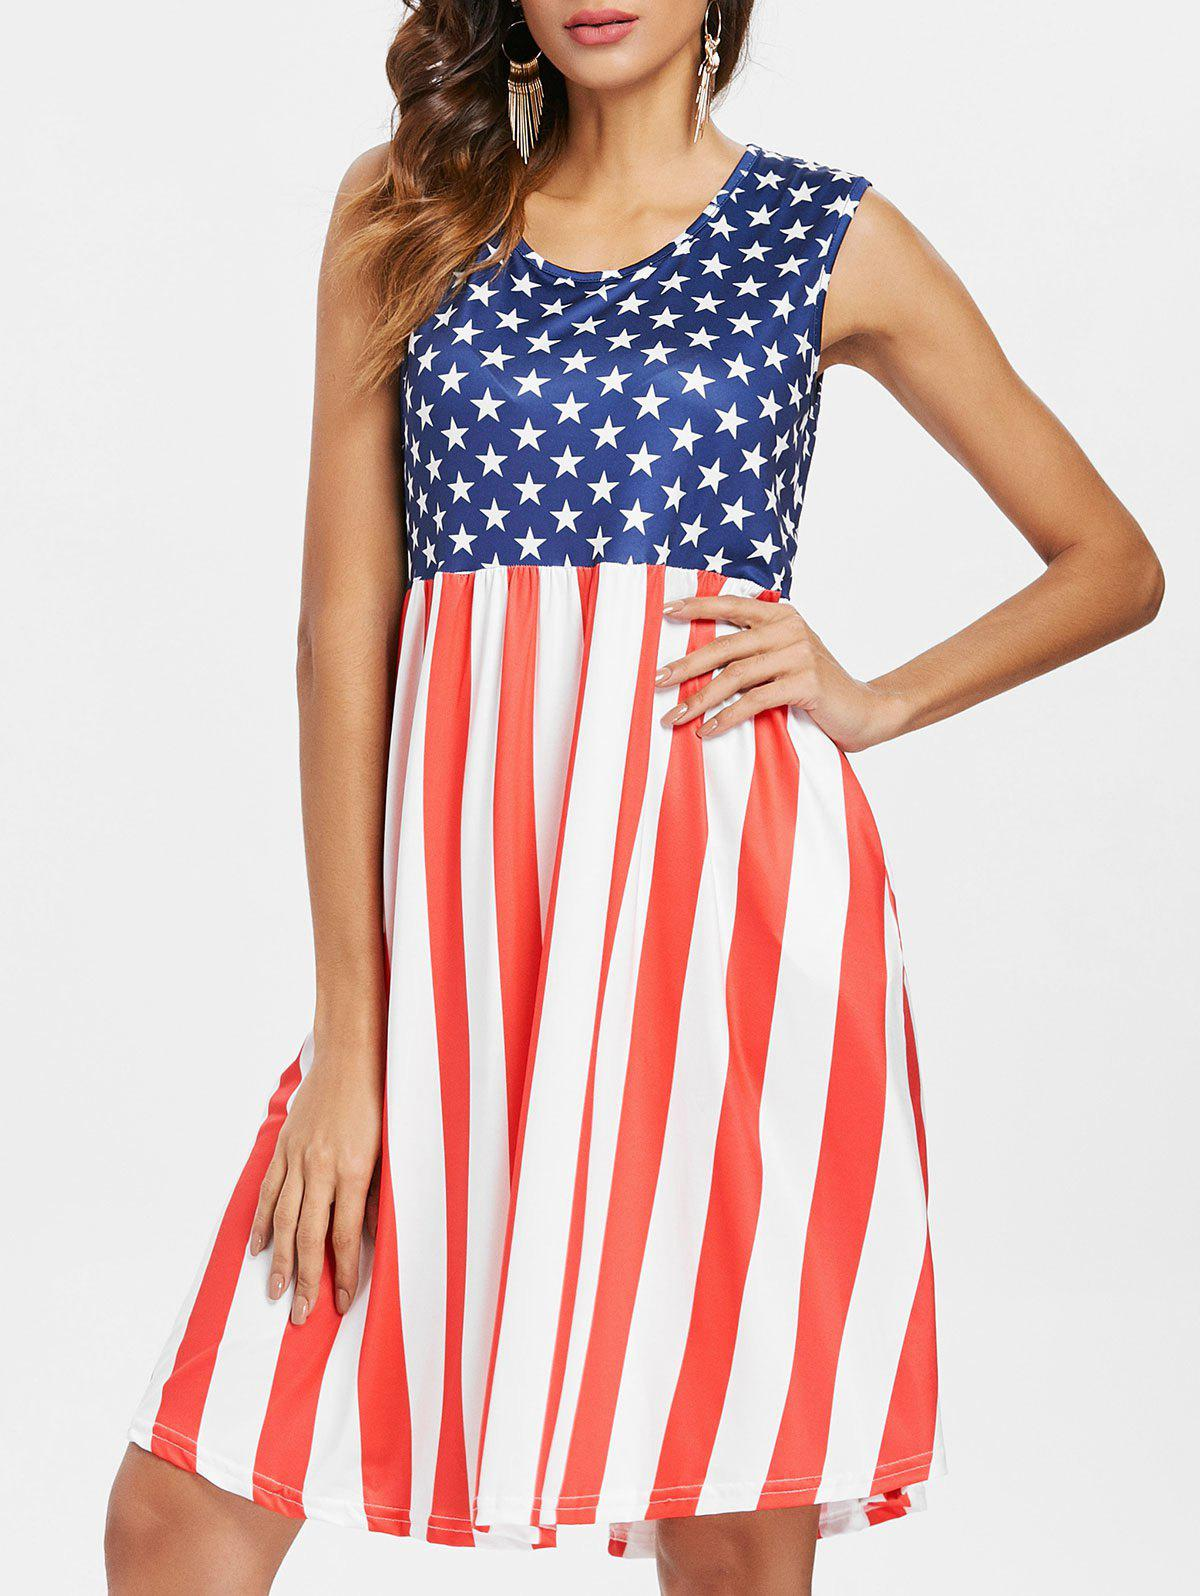 Affordable Sleeveless American Flag Dress